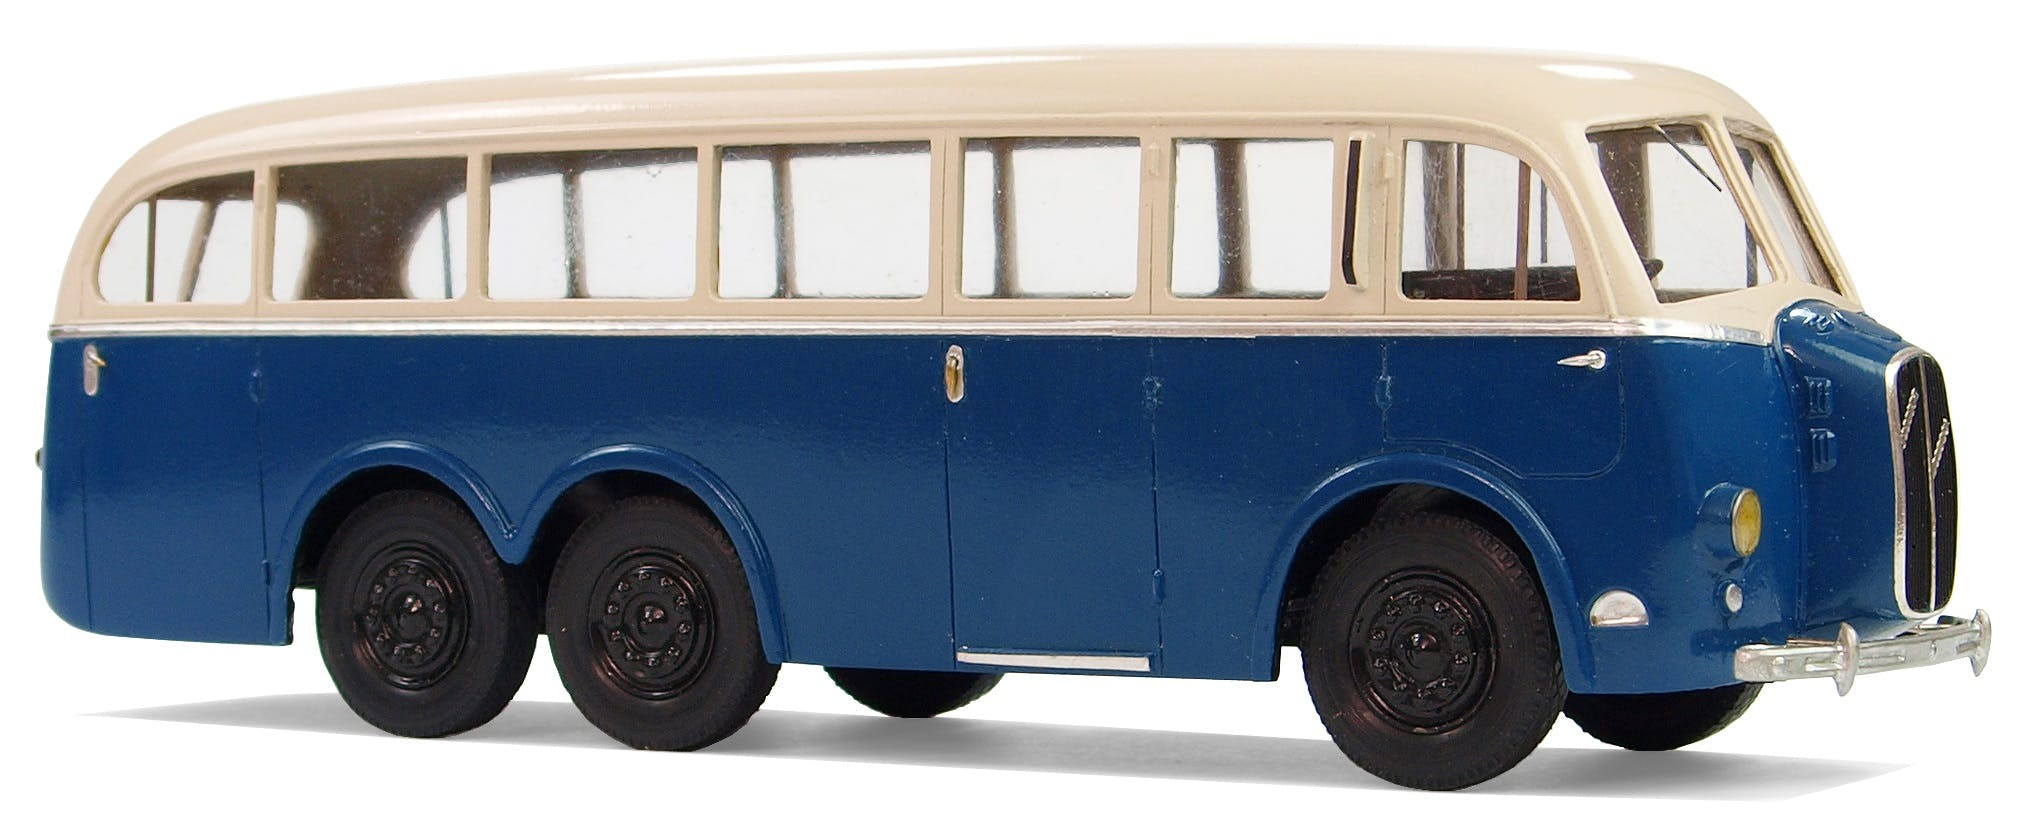 Free stock photo of buses, classic, collect, hobby